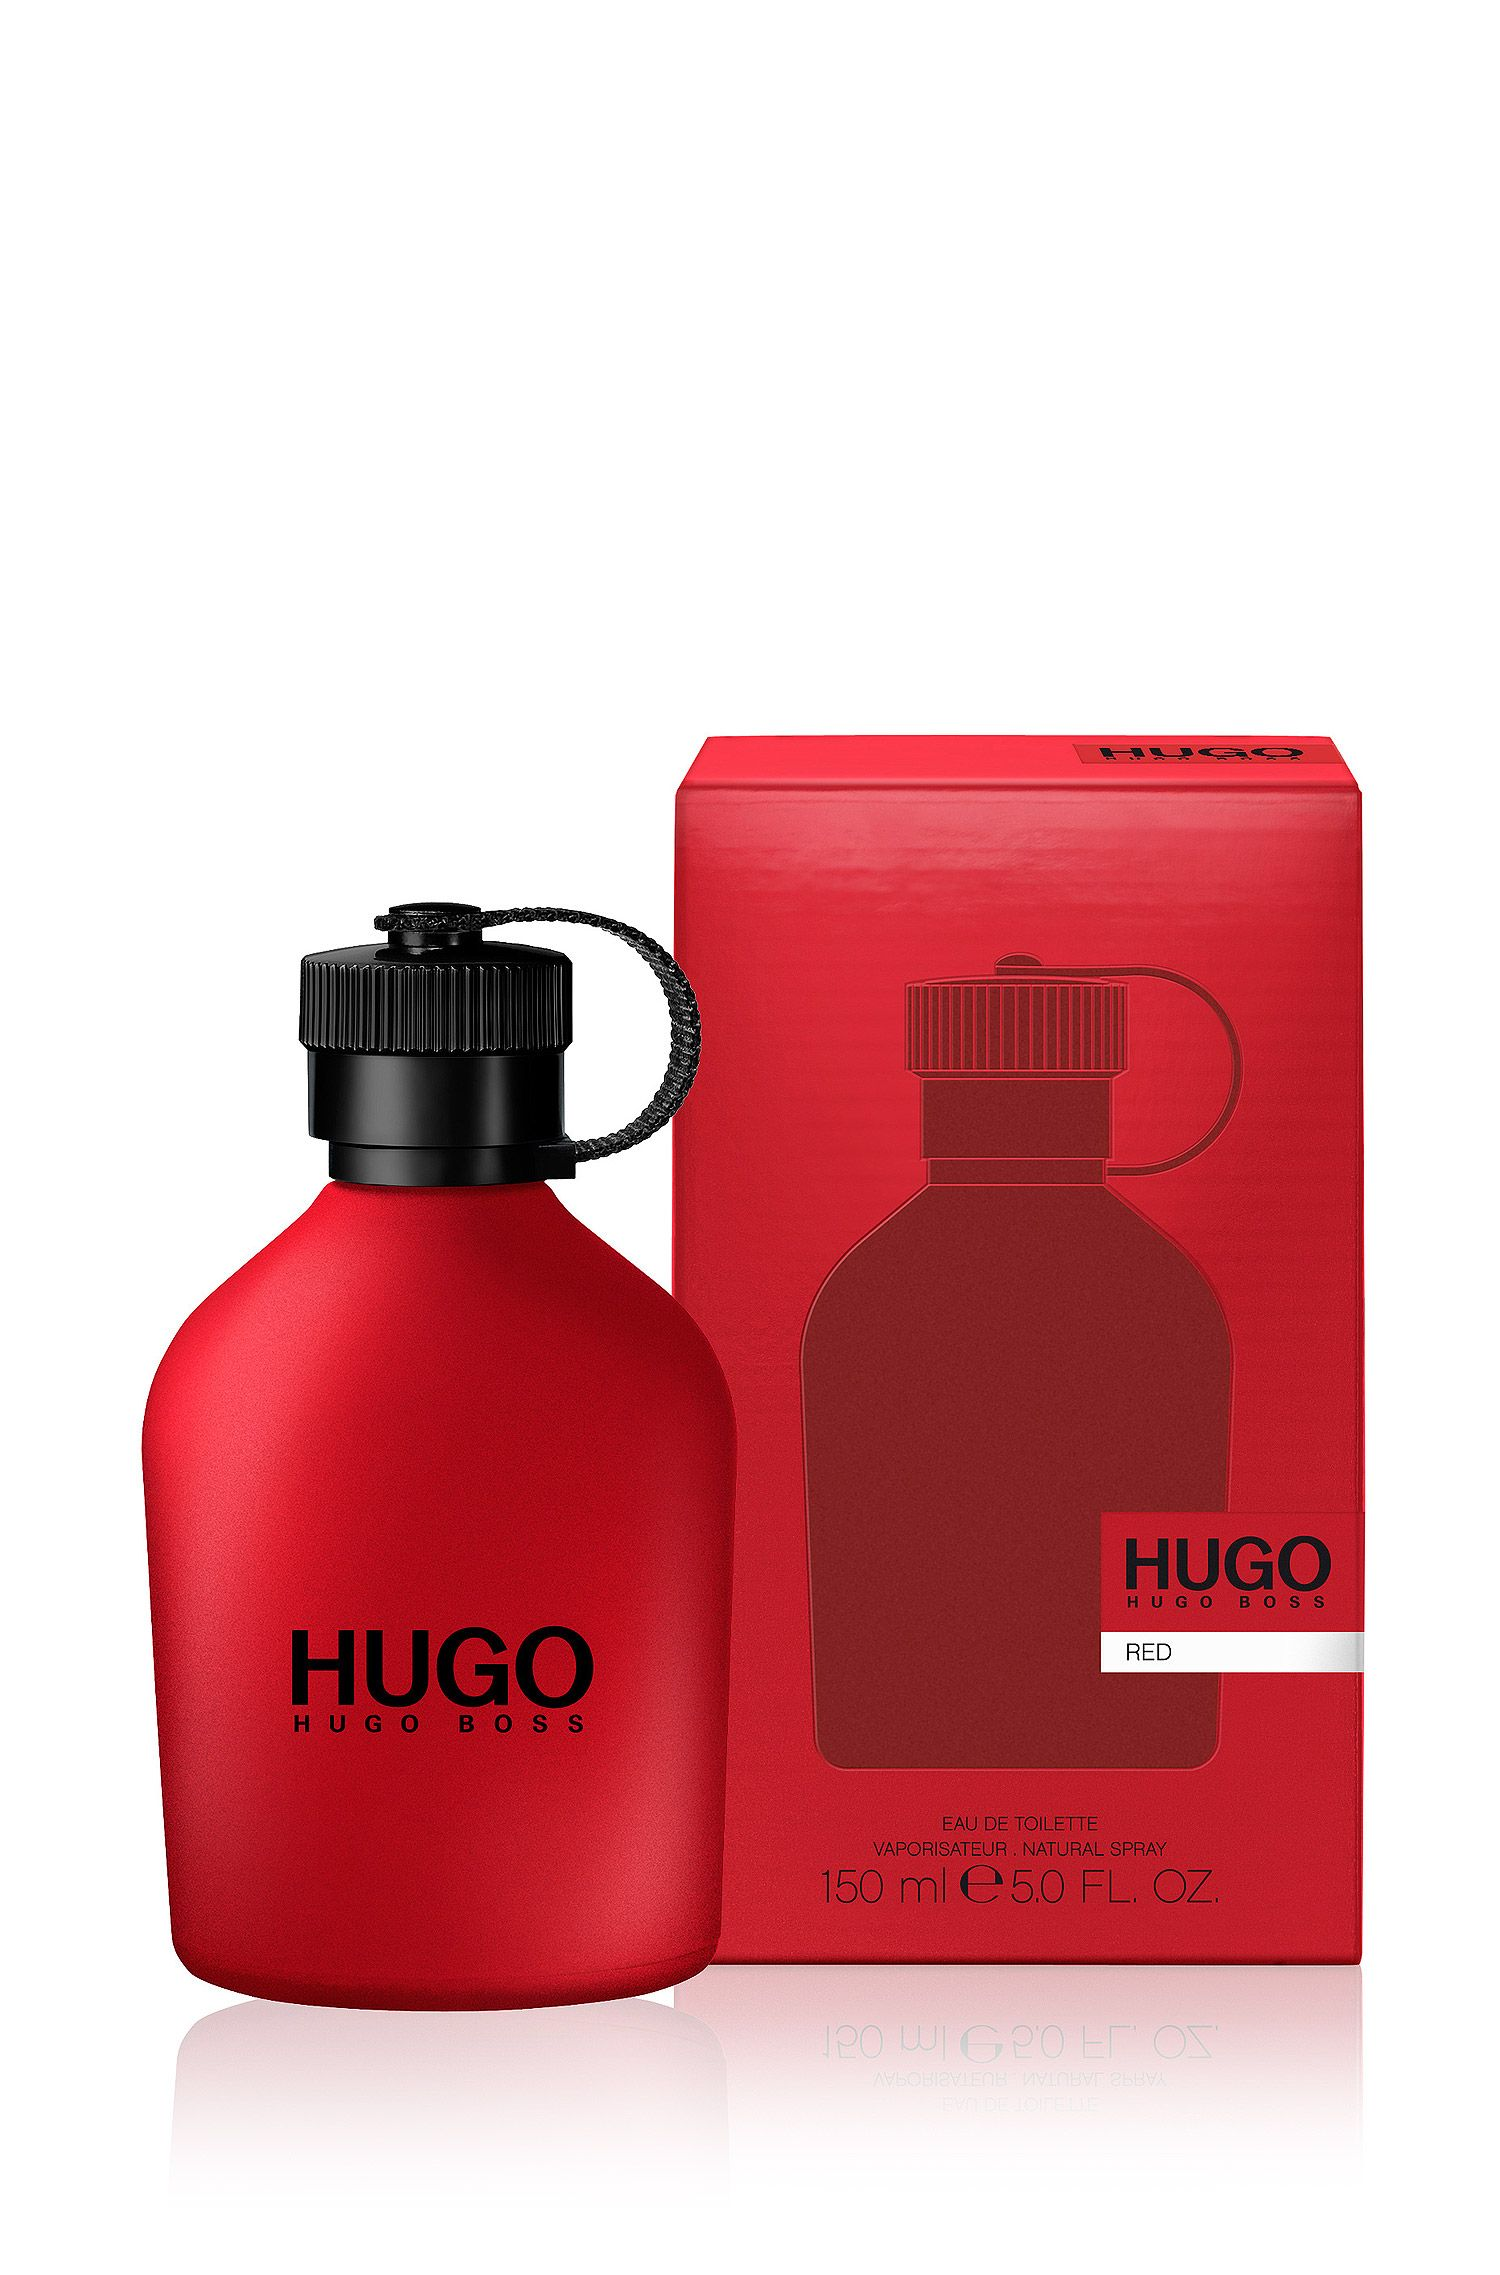 HUGO Red eau de toilette 150 ml